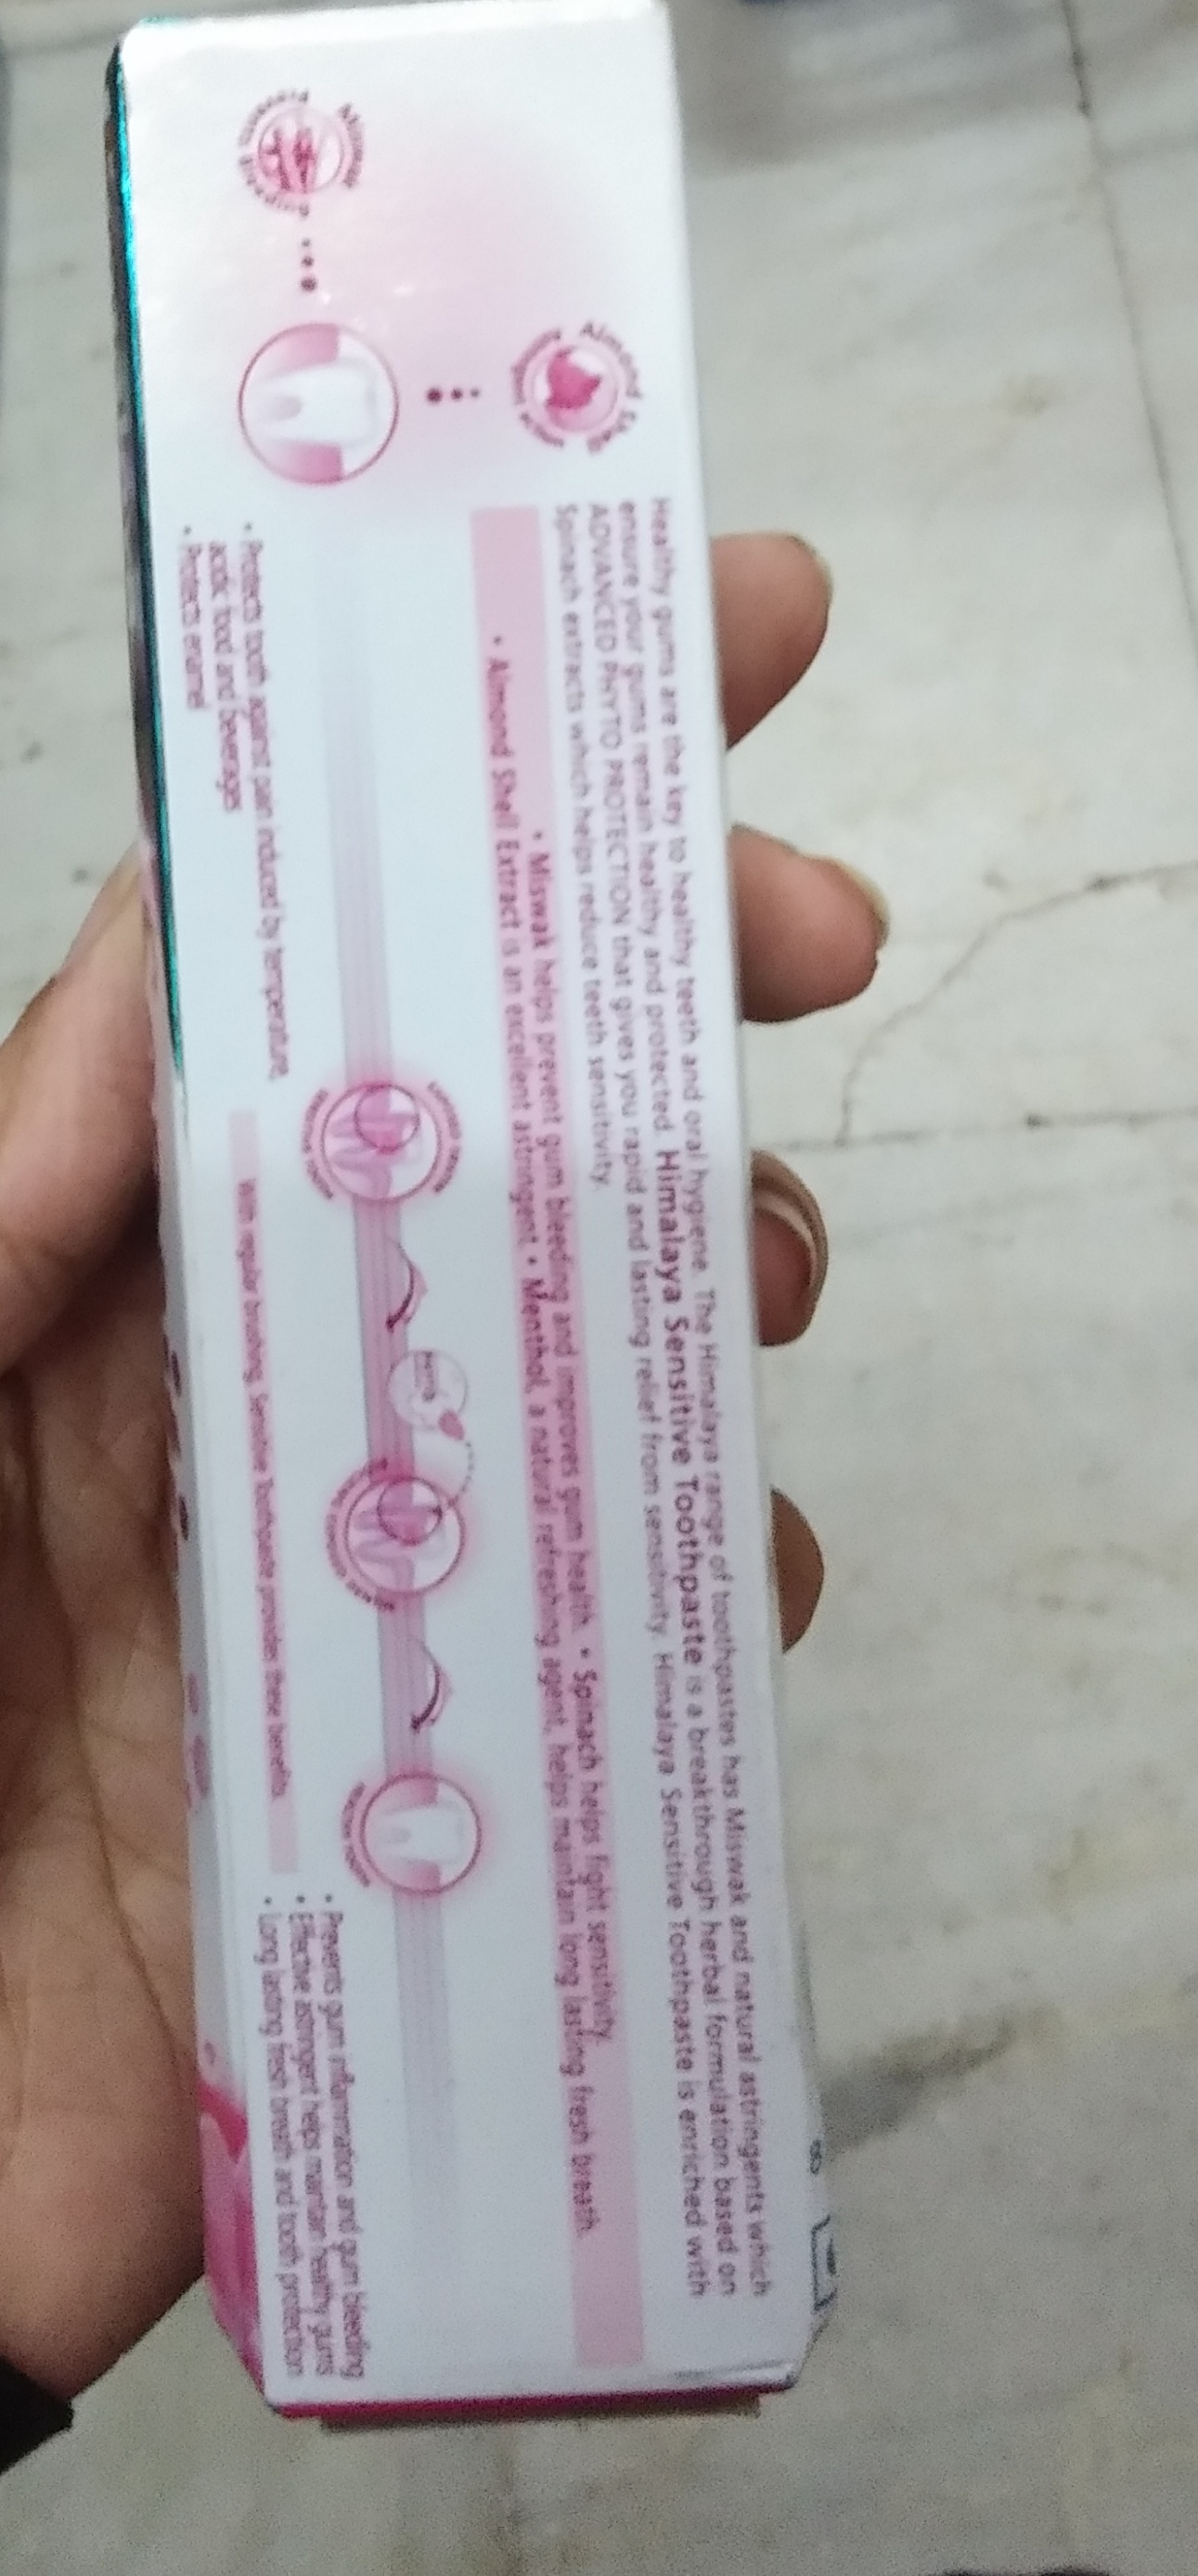 Himalaya Herbals Sensi Relief Herbal Toothpaste-Good one-By Nasreen-1